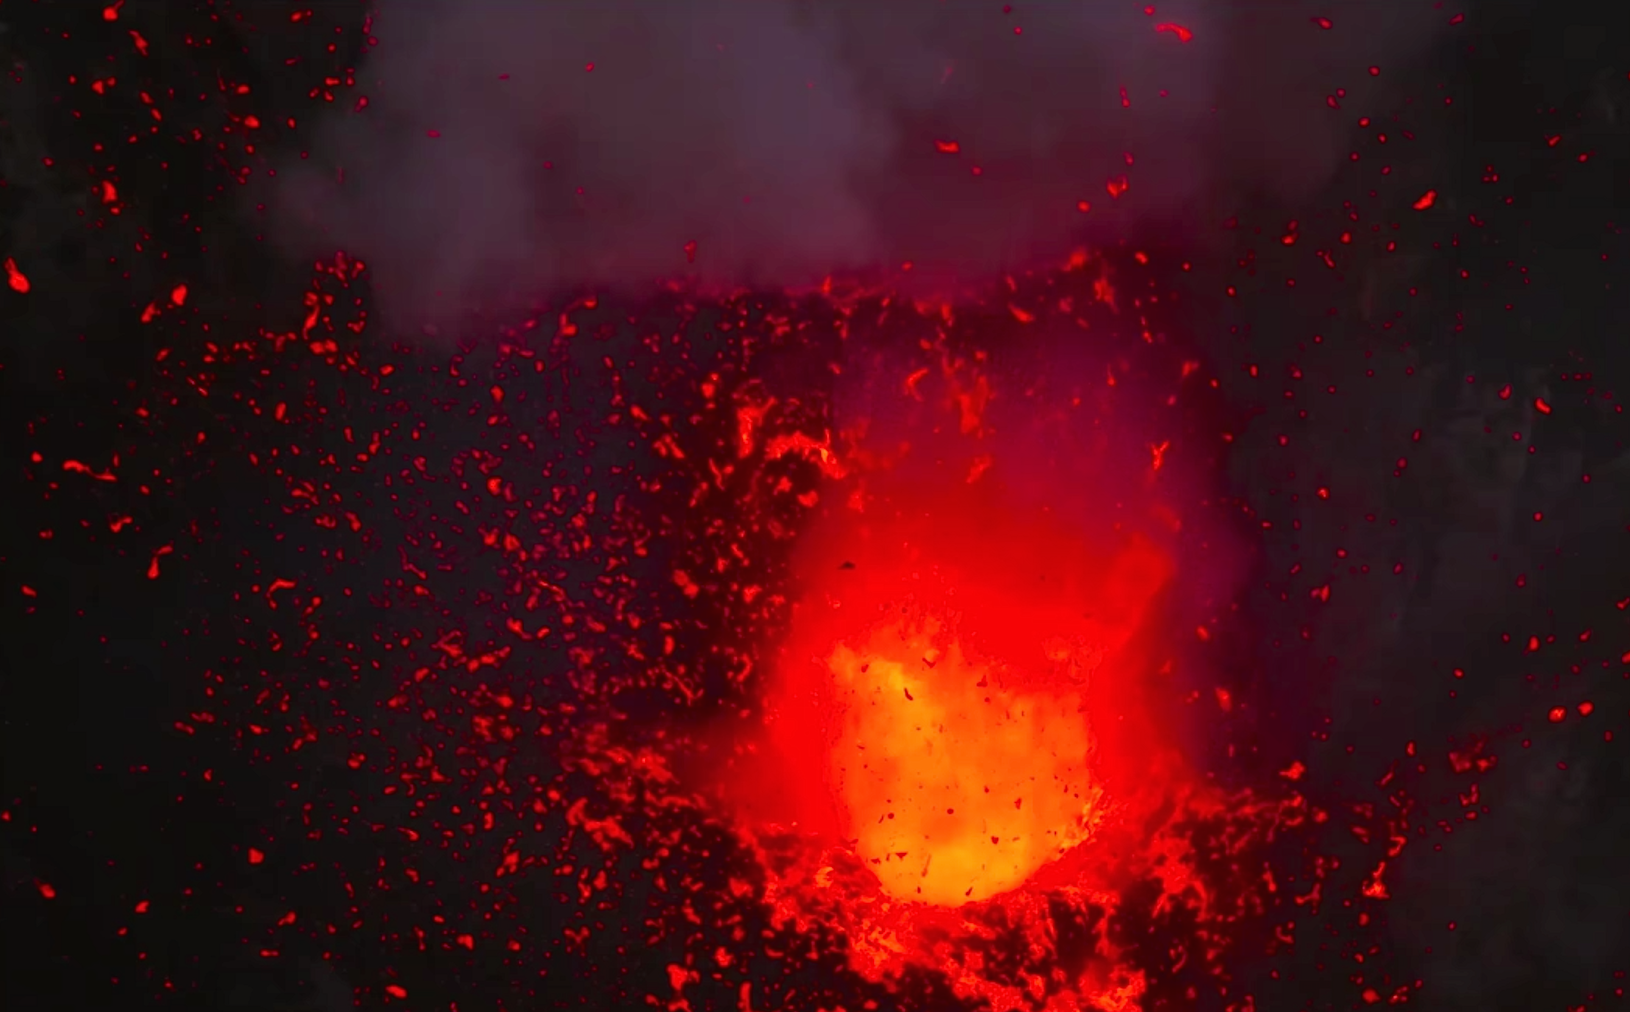 Into The Inferno (2016), Werner Herzog Volcano Documentary